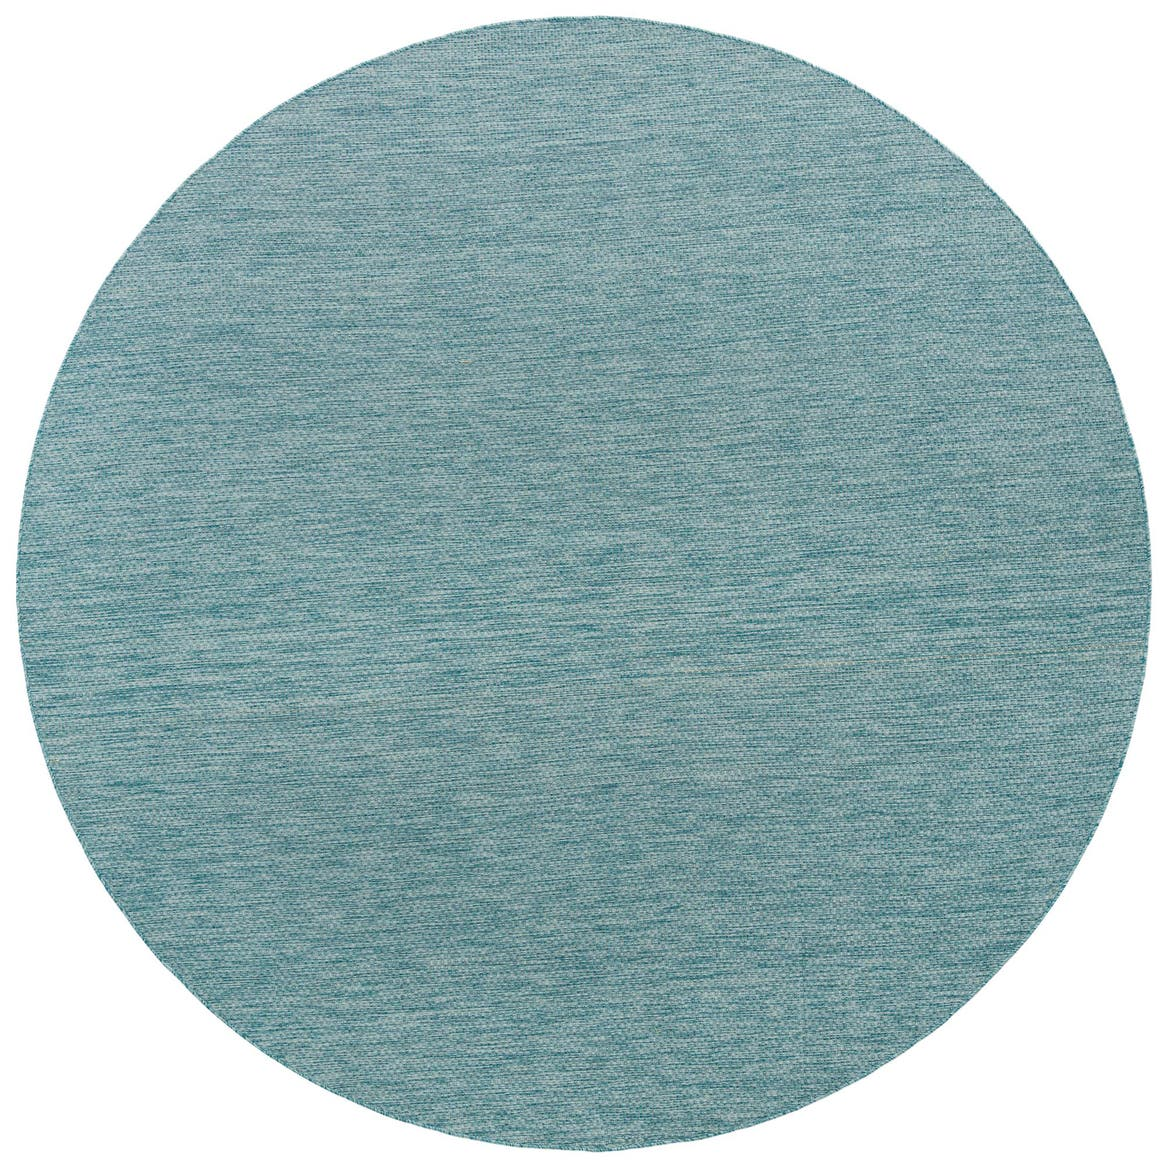 10' 8 x 10' 8 Outdoor Solid Round Rug main image